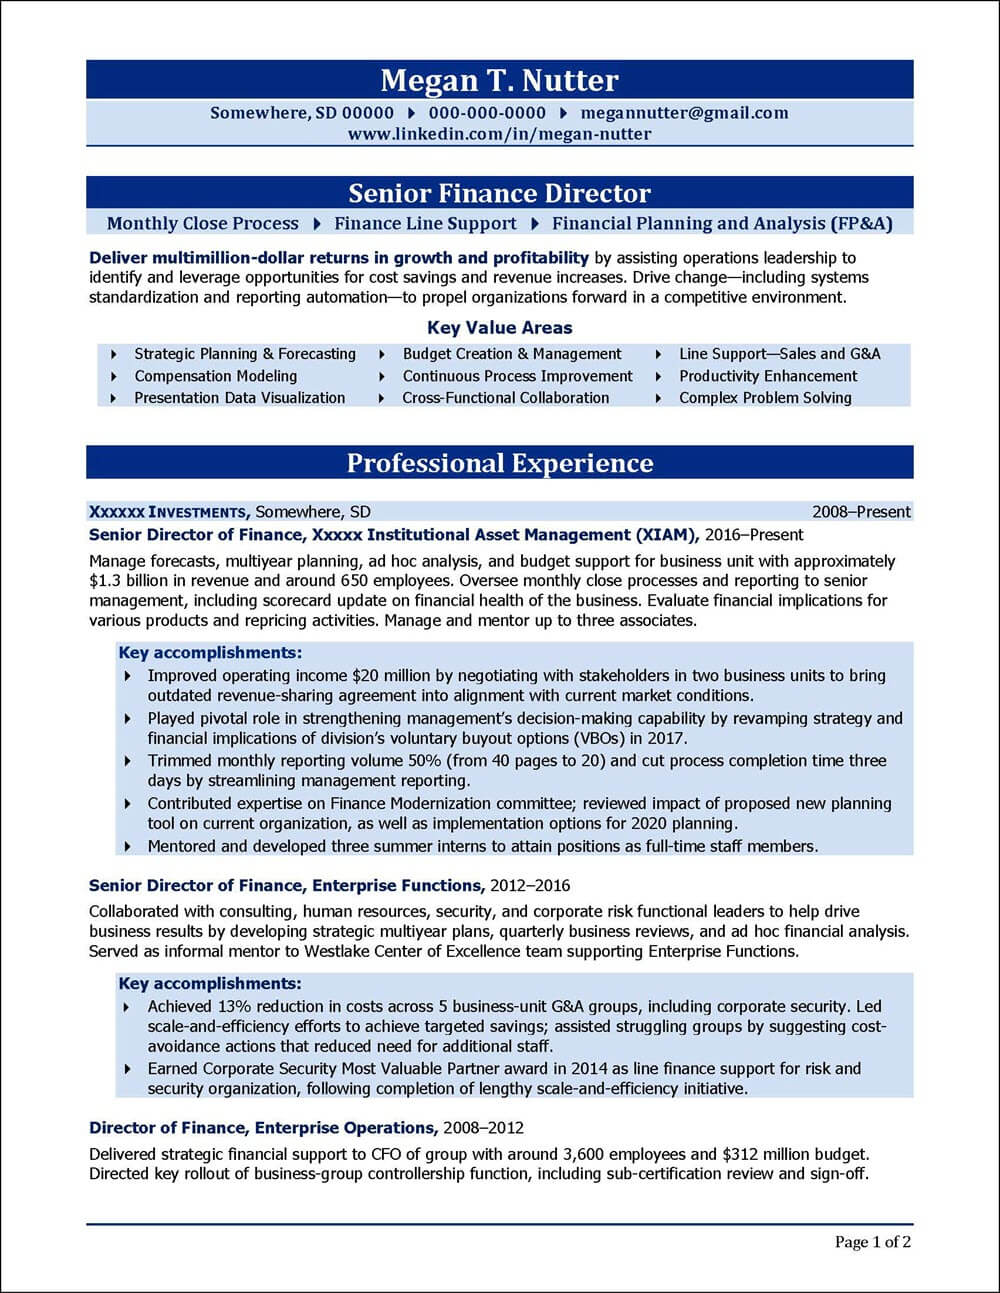 Senior Finance Director Resume page 1